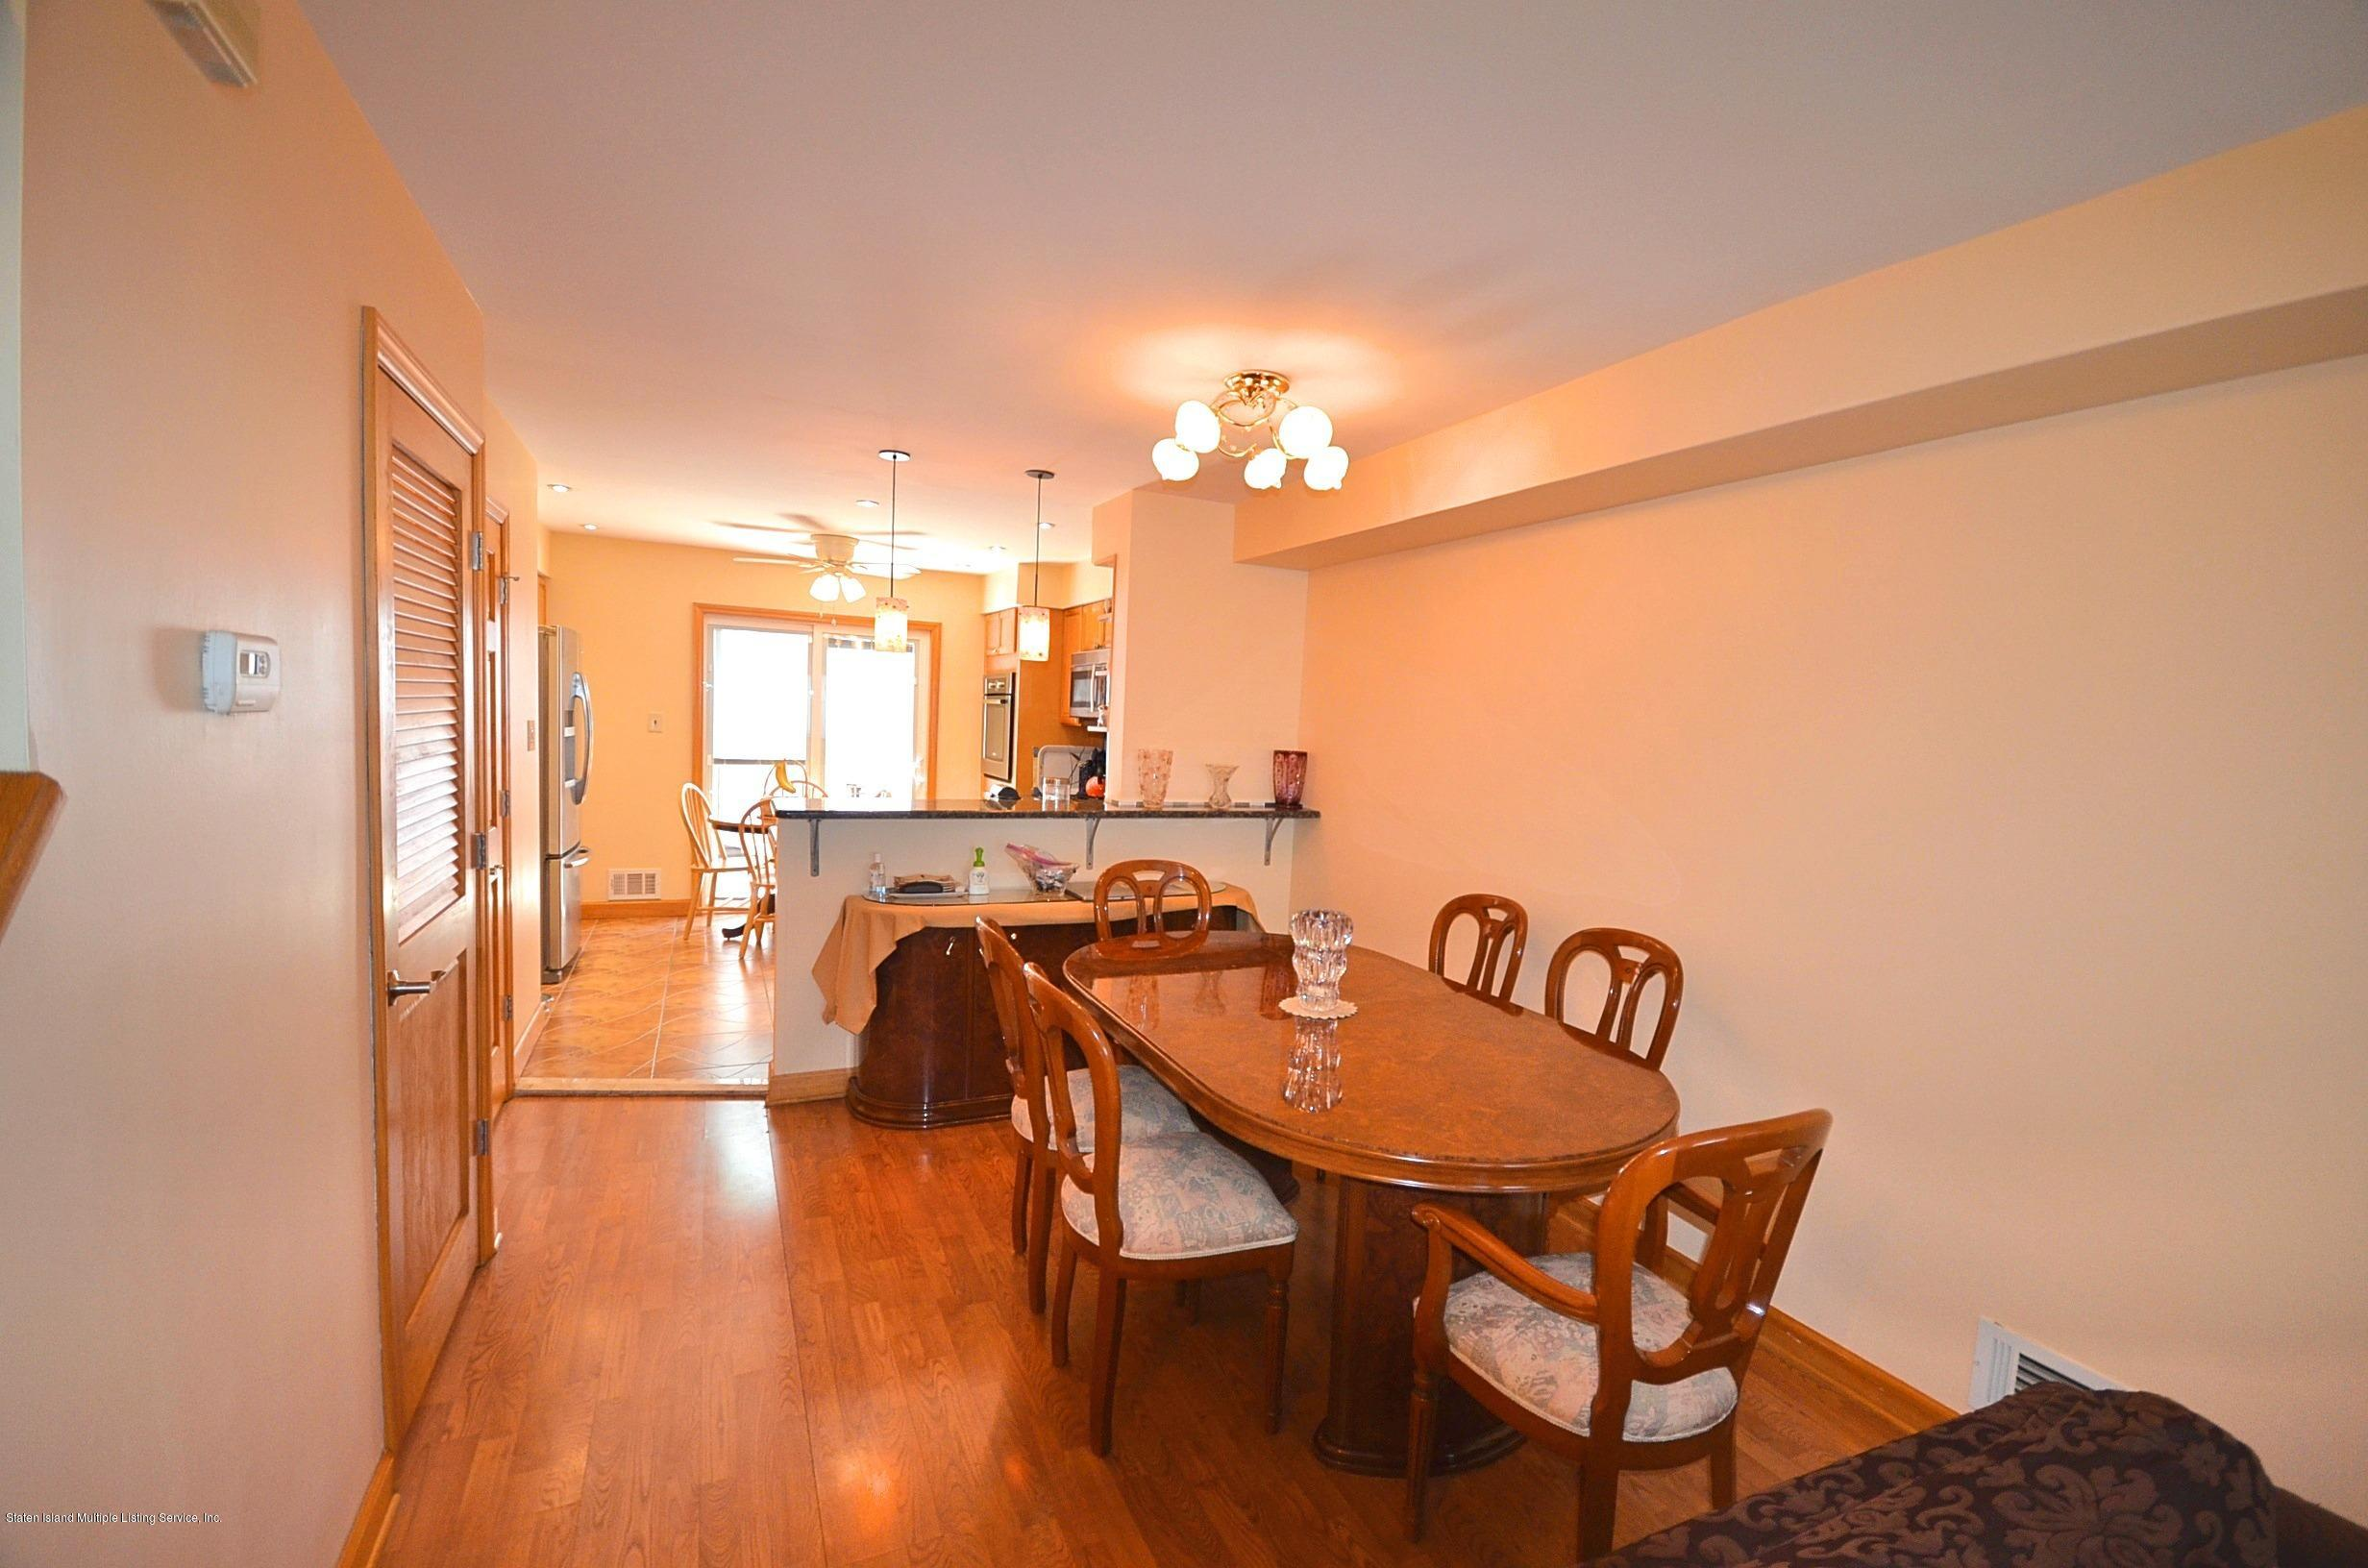 Single Family - Attached 16 Lillie Lane  Staten Island, NY 10314, MLS-1138605-5